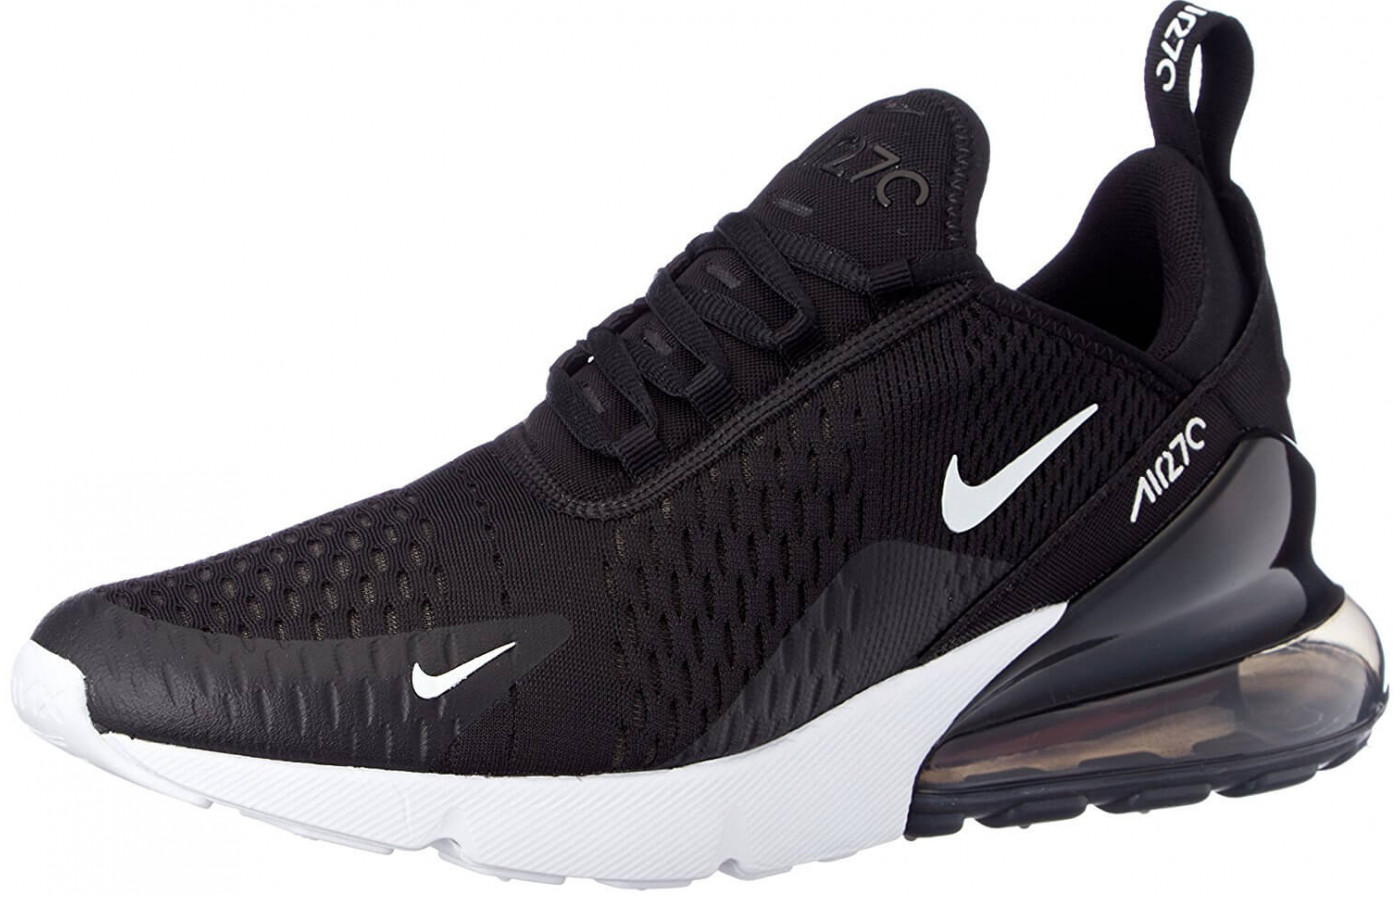 ff45fca3d98c Nike Air Max 270 Reviewed - To Buy or Not in May 2019